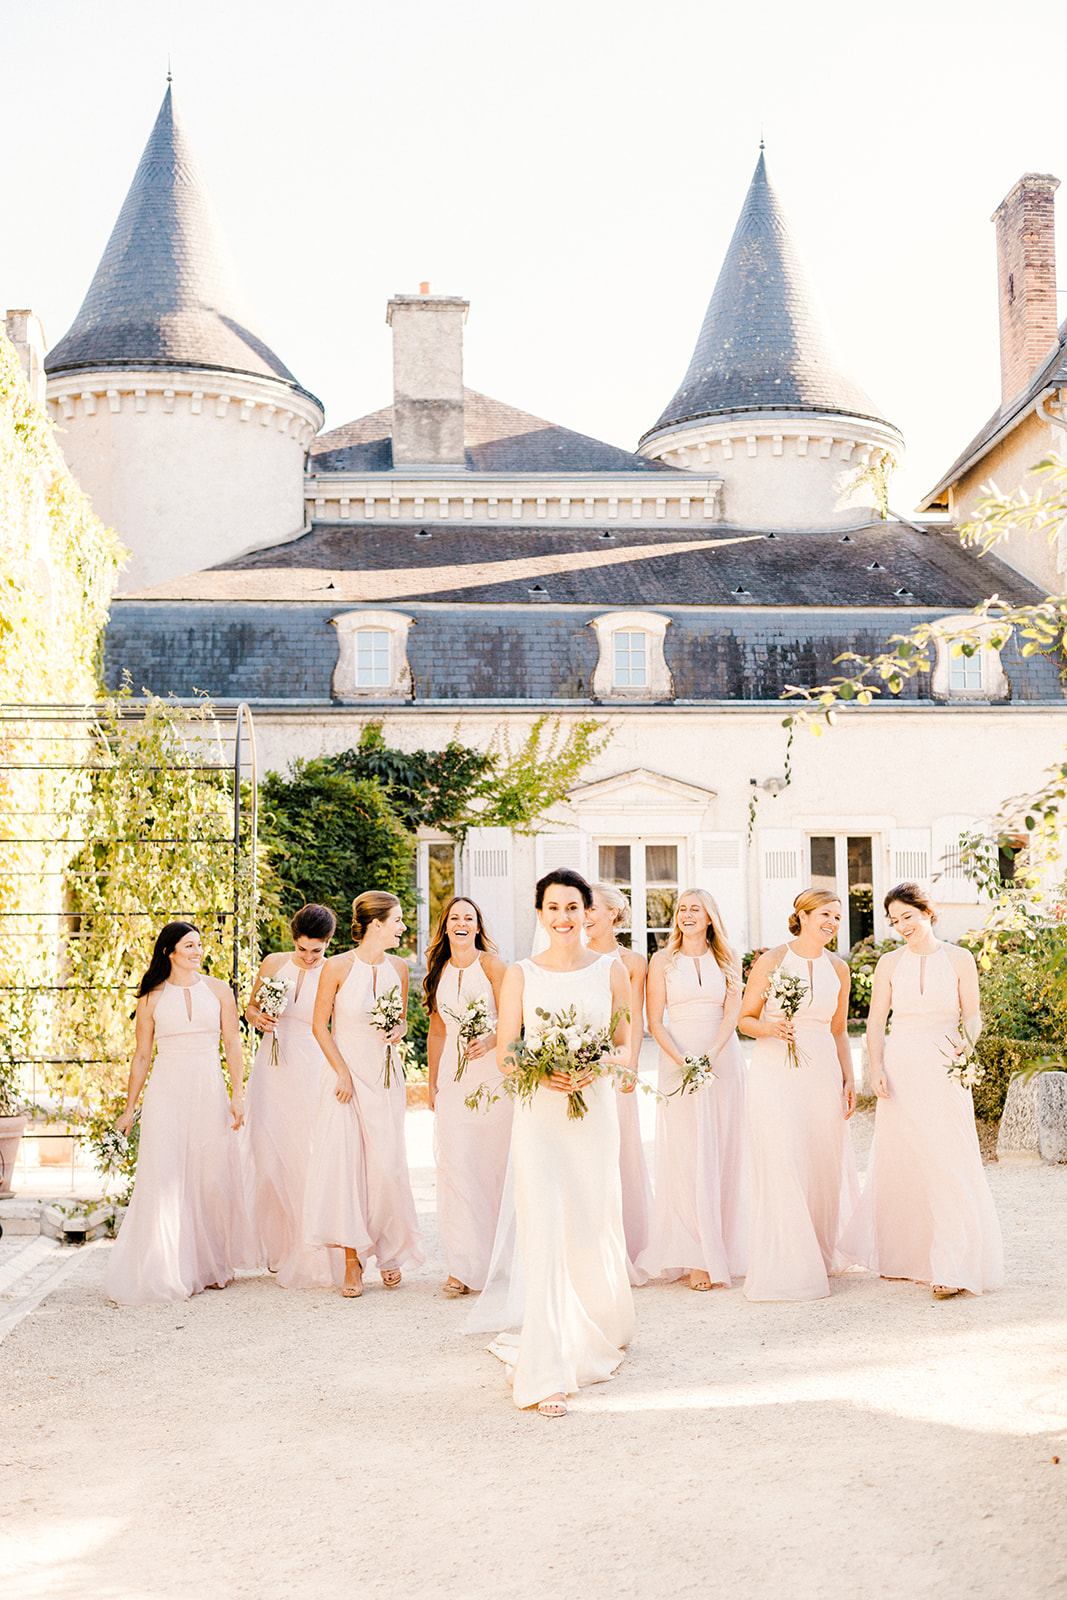 French Destination Wedding, Loire Valley, Events by Reagan, Saint Victor La Grand' Maison